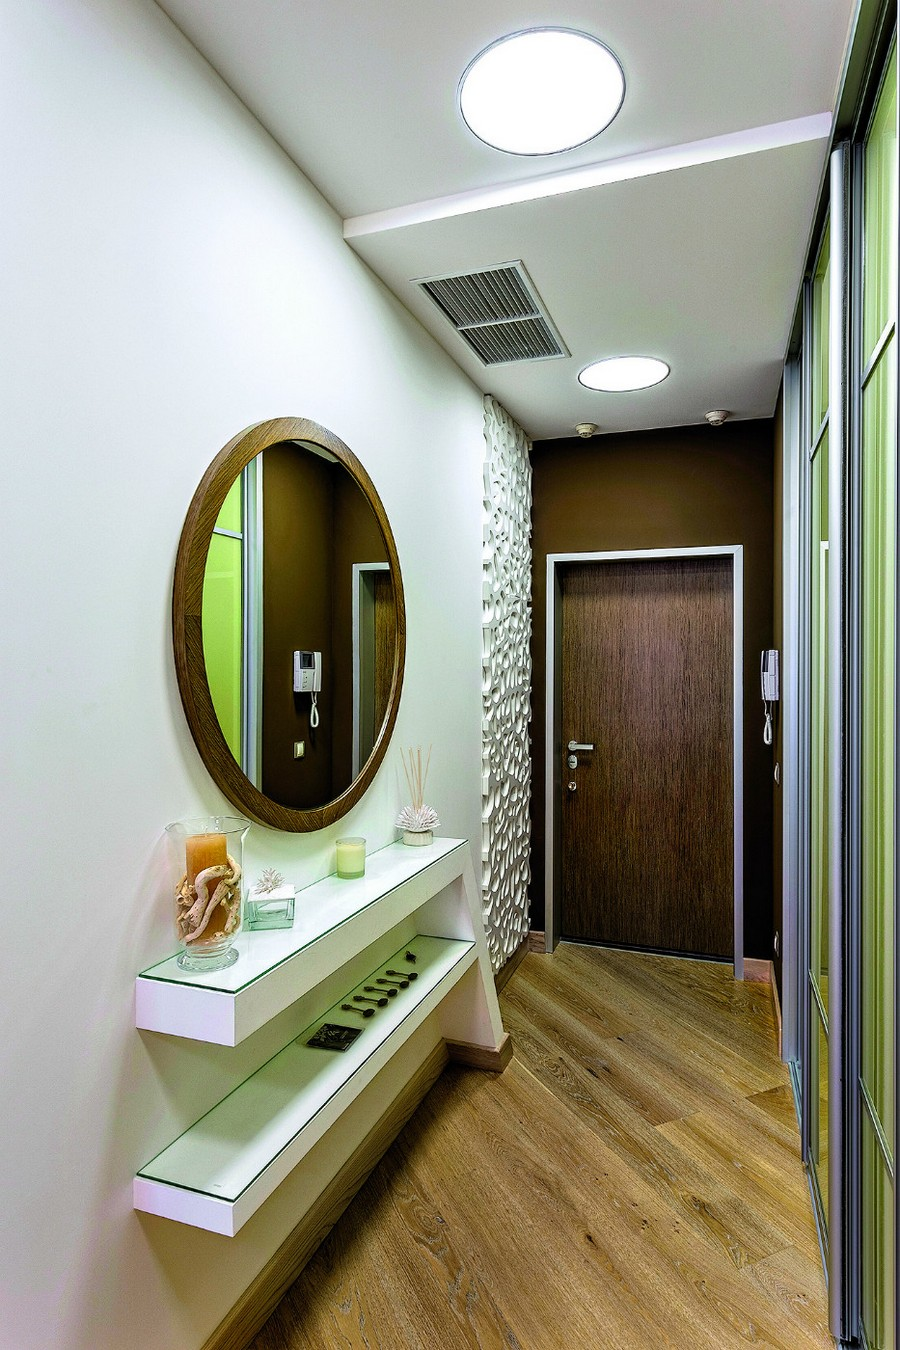 1-contemporary-style-entrance-hall-hallway-interior-design-plasterboard-sheetrock-3D-wall-decor-green-glass-built-in-closet-brown-door-white-wall-shelves-round-mirror-diagonal-parquetry